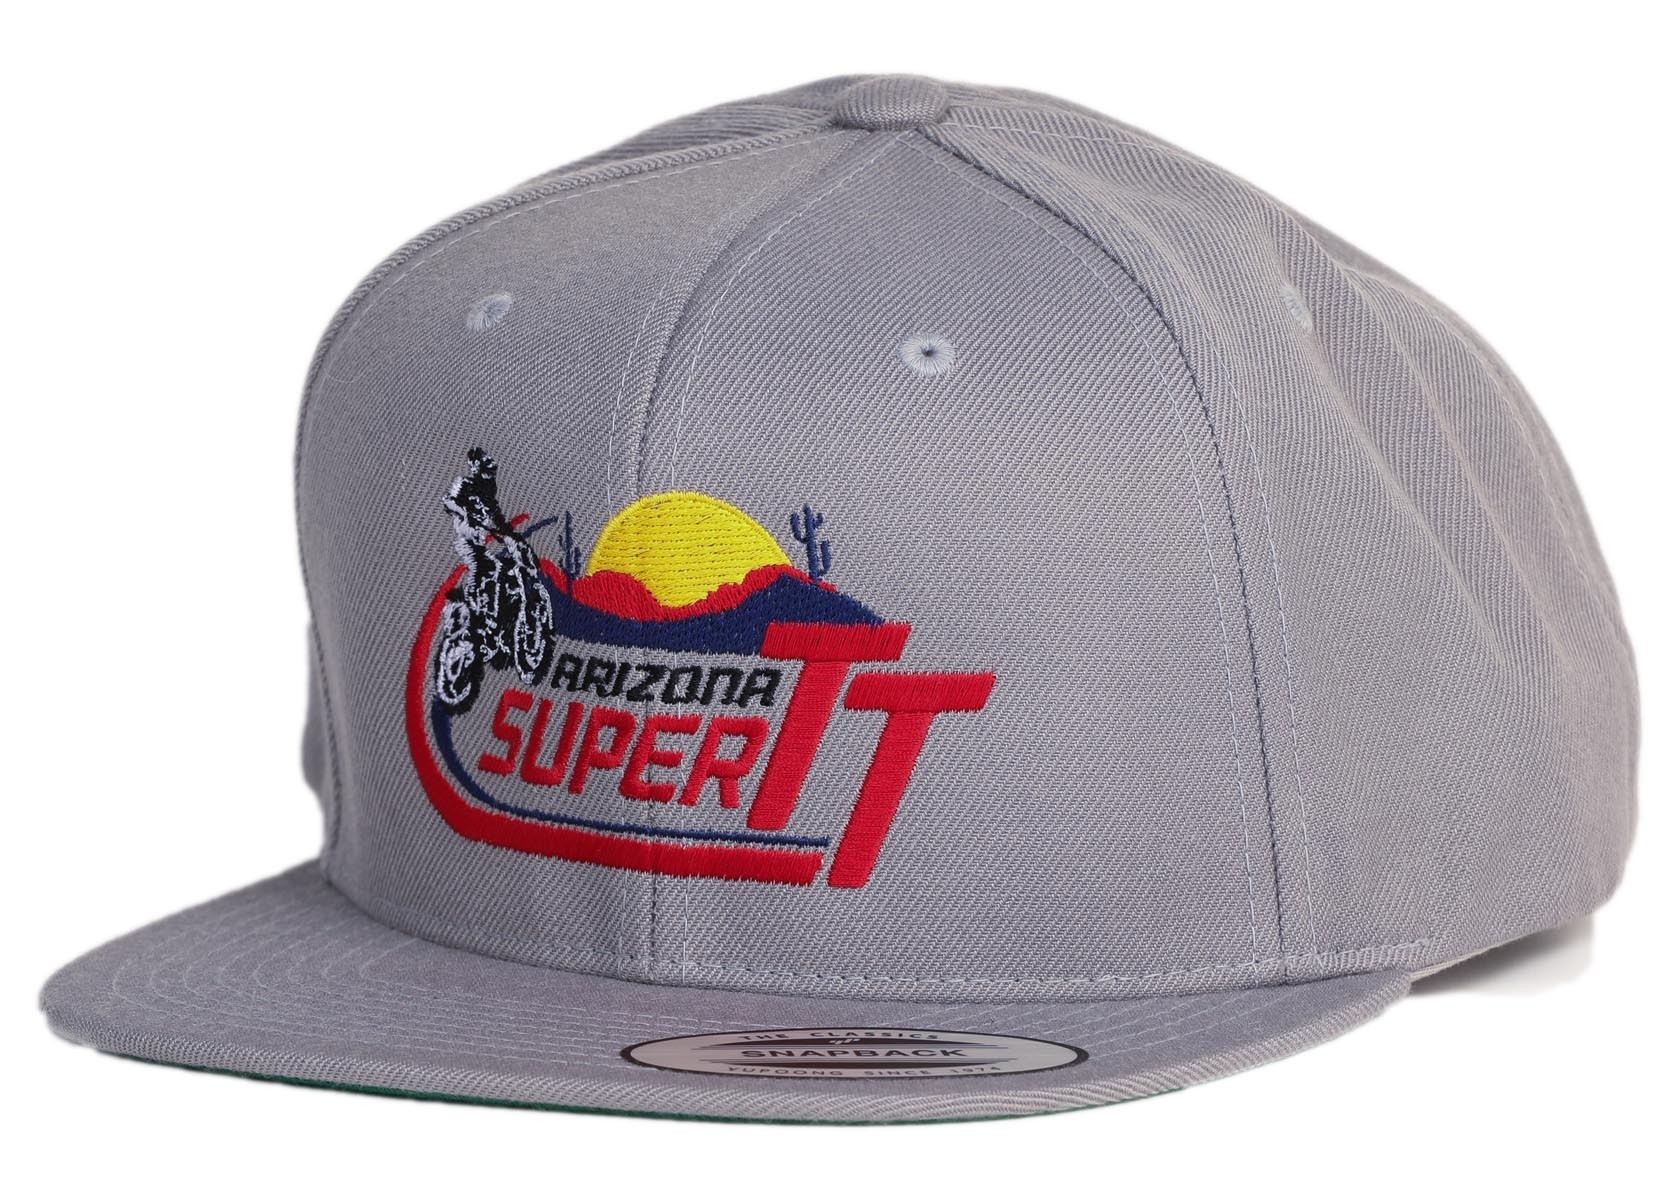 2019 Arizona Super TT Event Hat